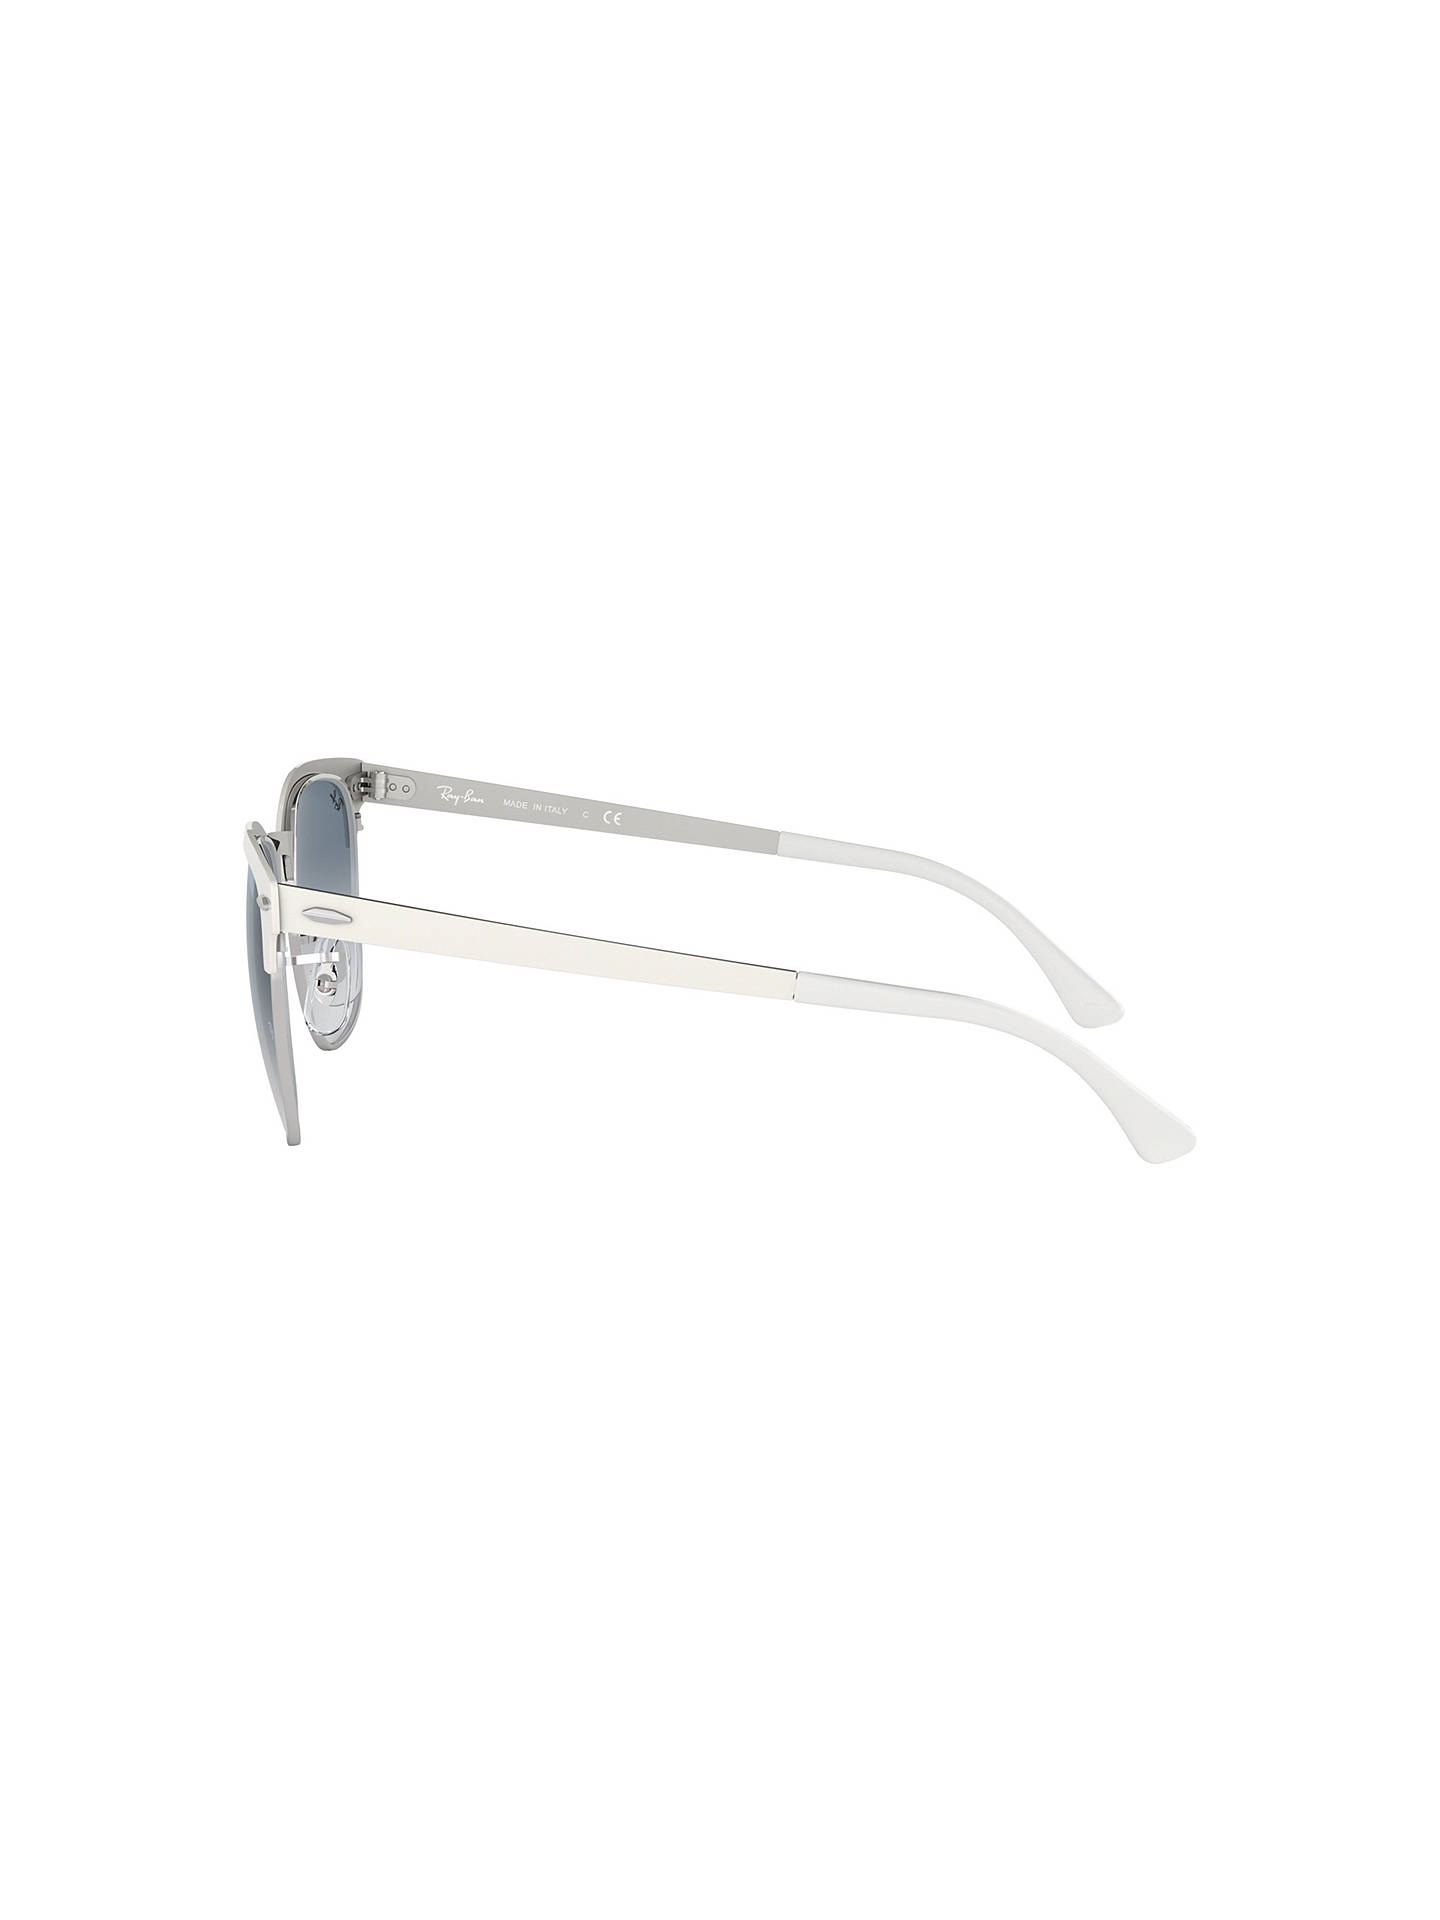 BuyRay-Ban RB3716 Polarised Unisex Gradient Square Sunglasses Online at johnlewis.com